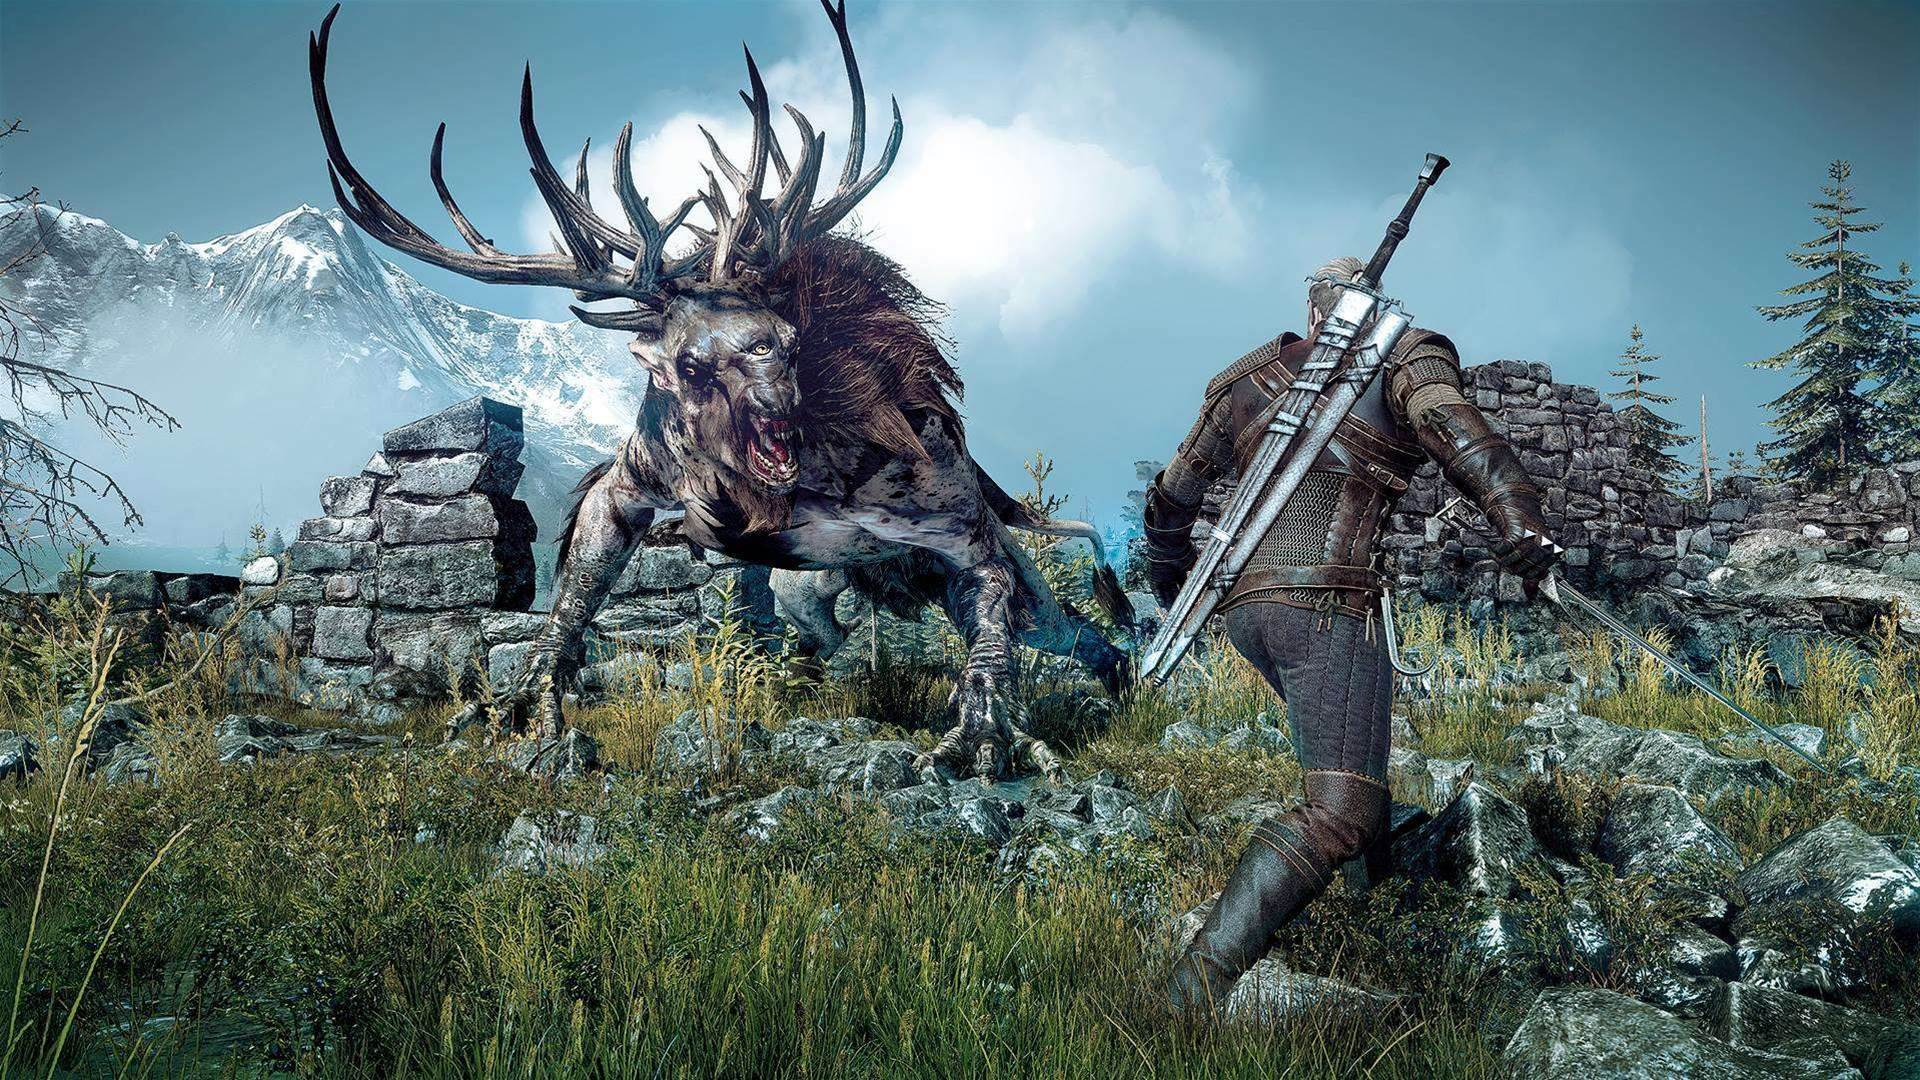 The Witcher 3: The Wild Hunt's DLC will be free for all